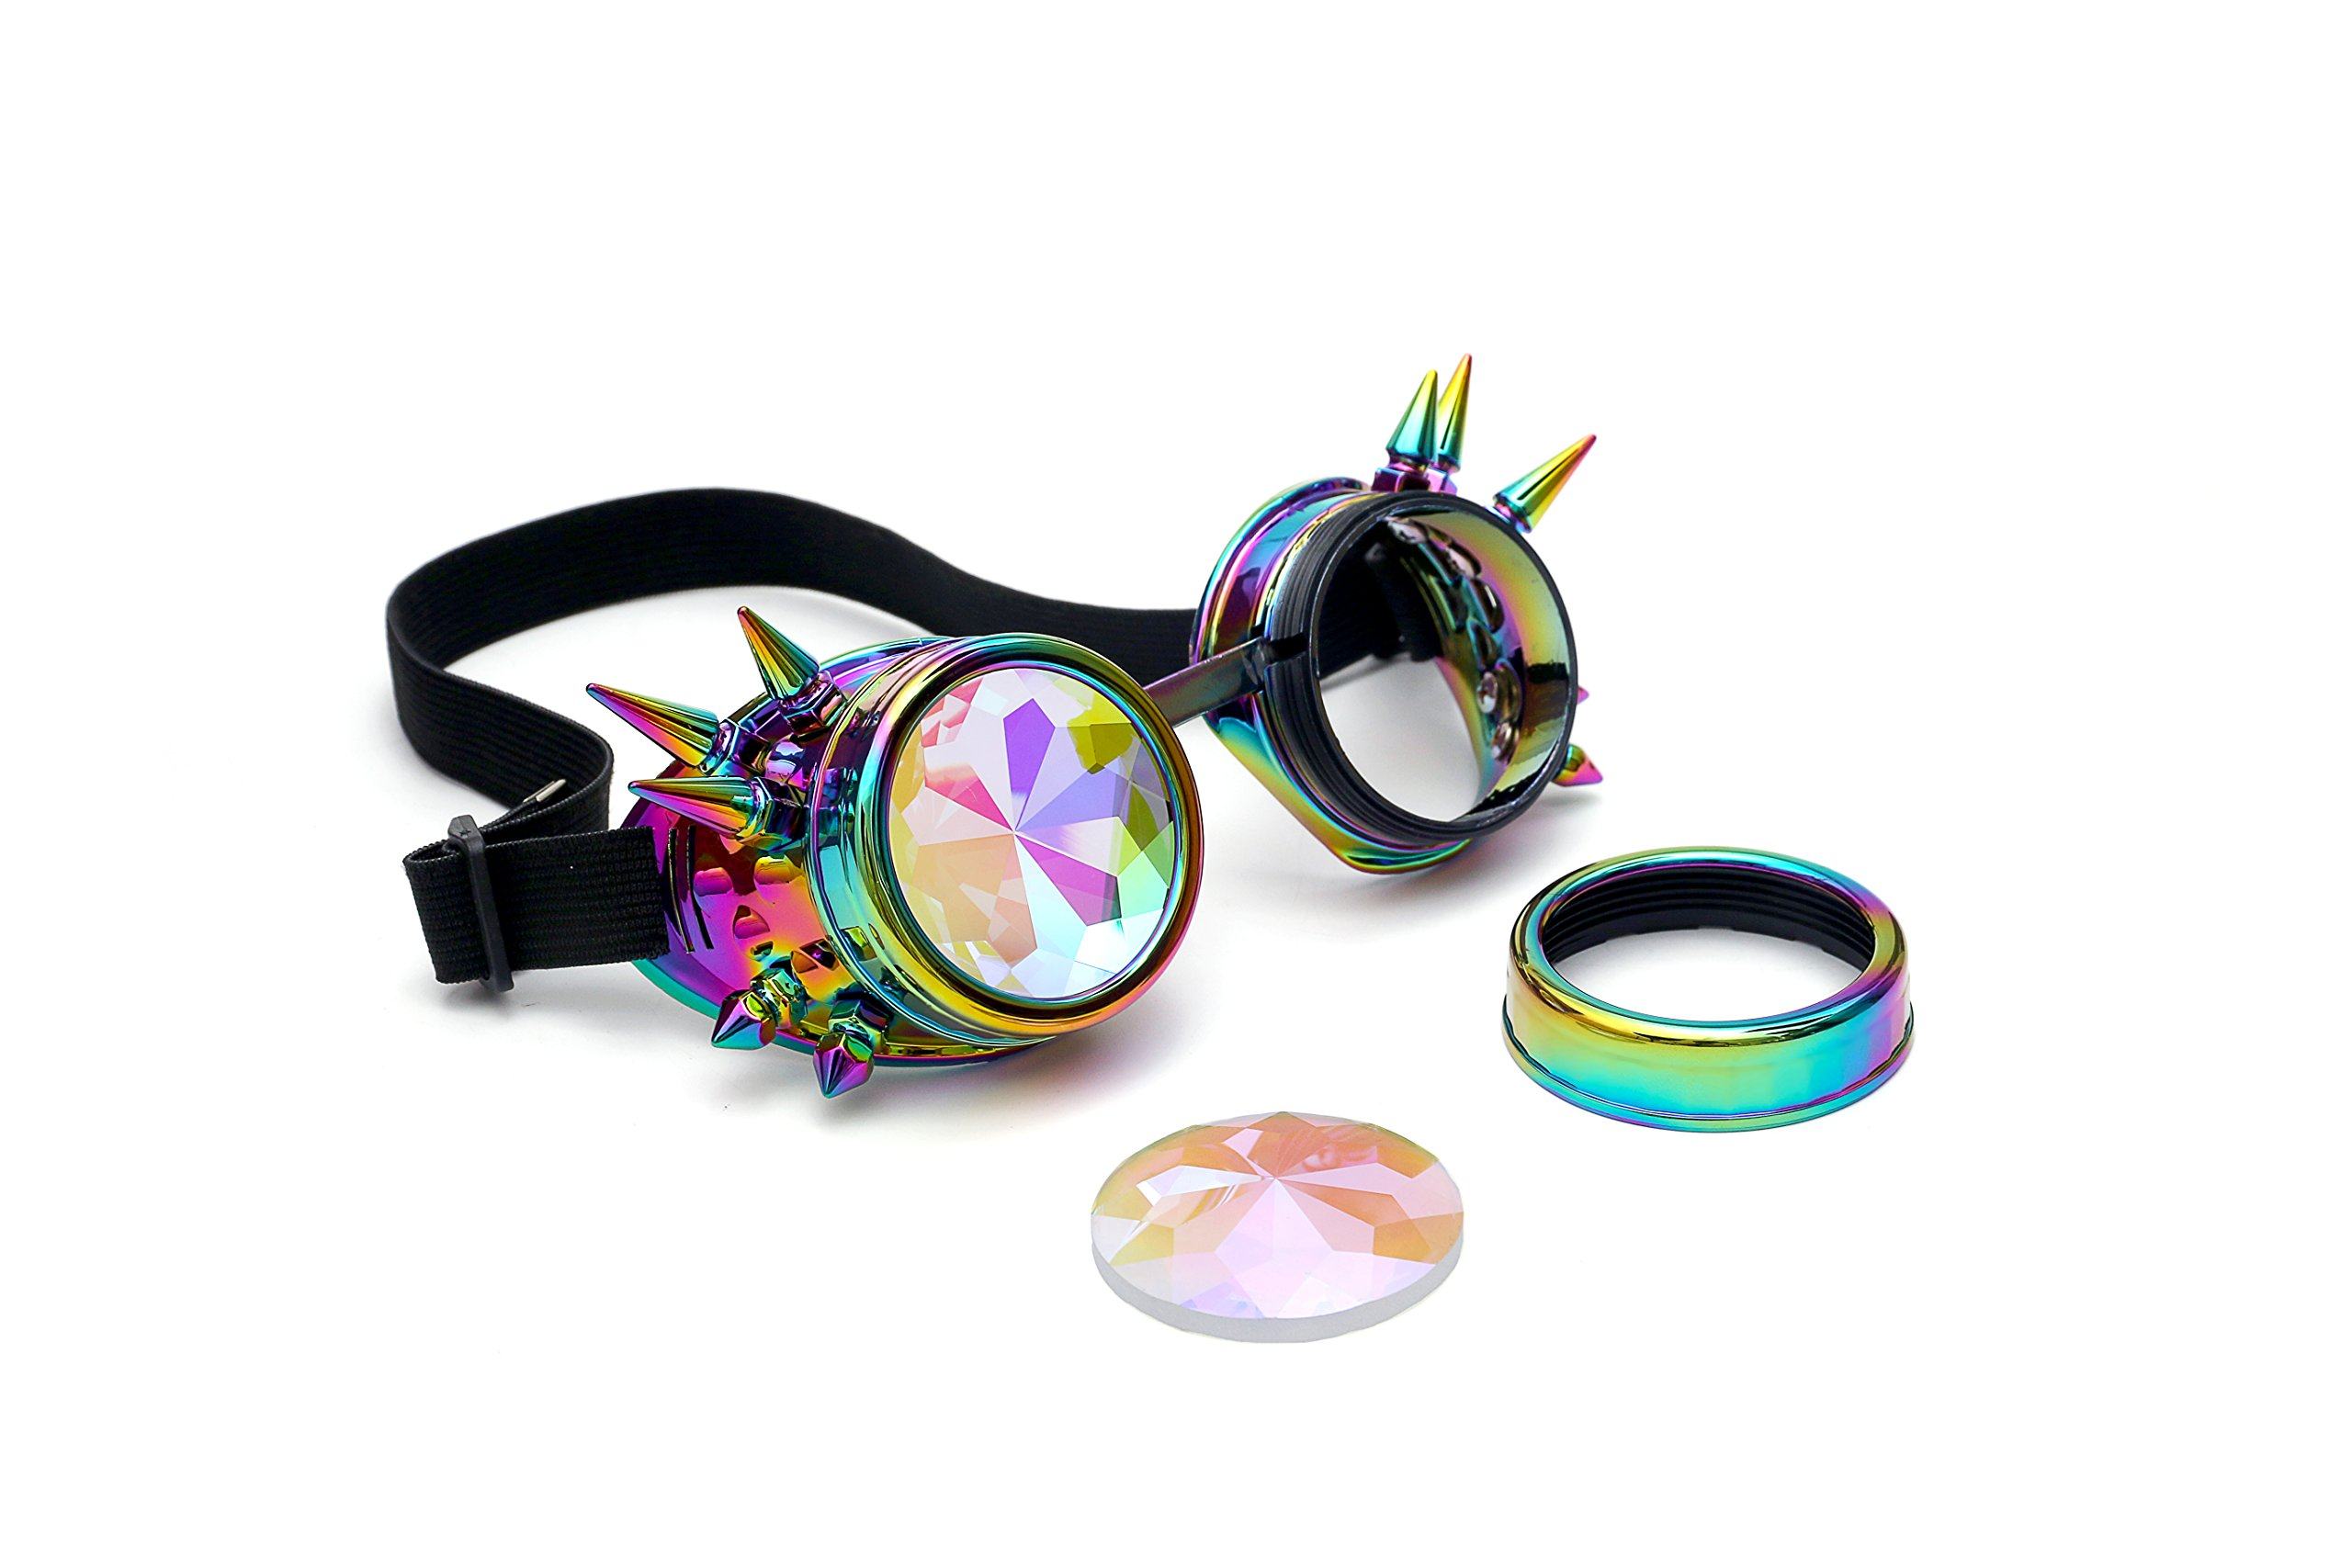 FIRSTLIKE Festivals Kaleidoscope Rainbow Glasses Prism Sunglasses Goggles by FIRSTLIKE (Image #2)